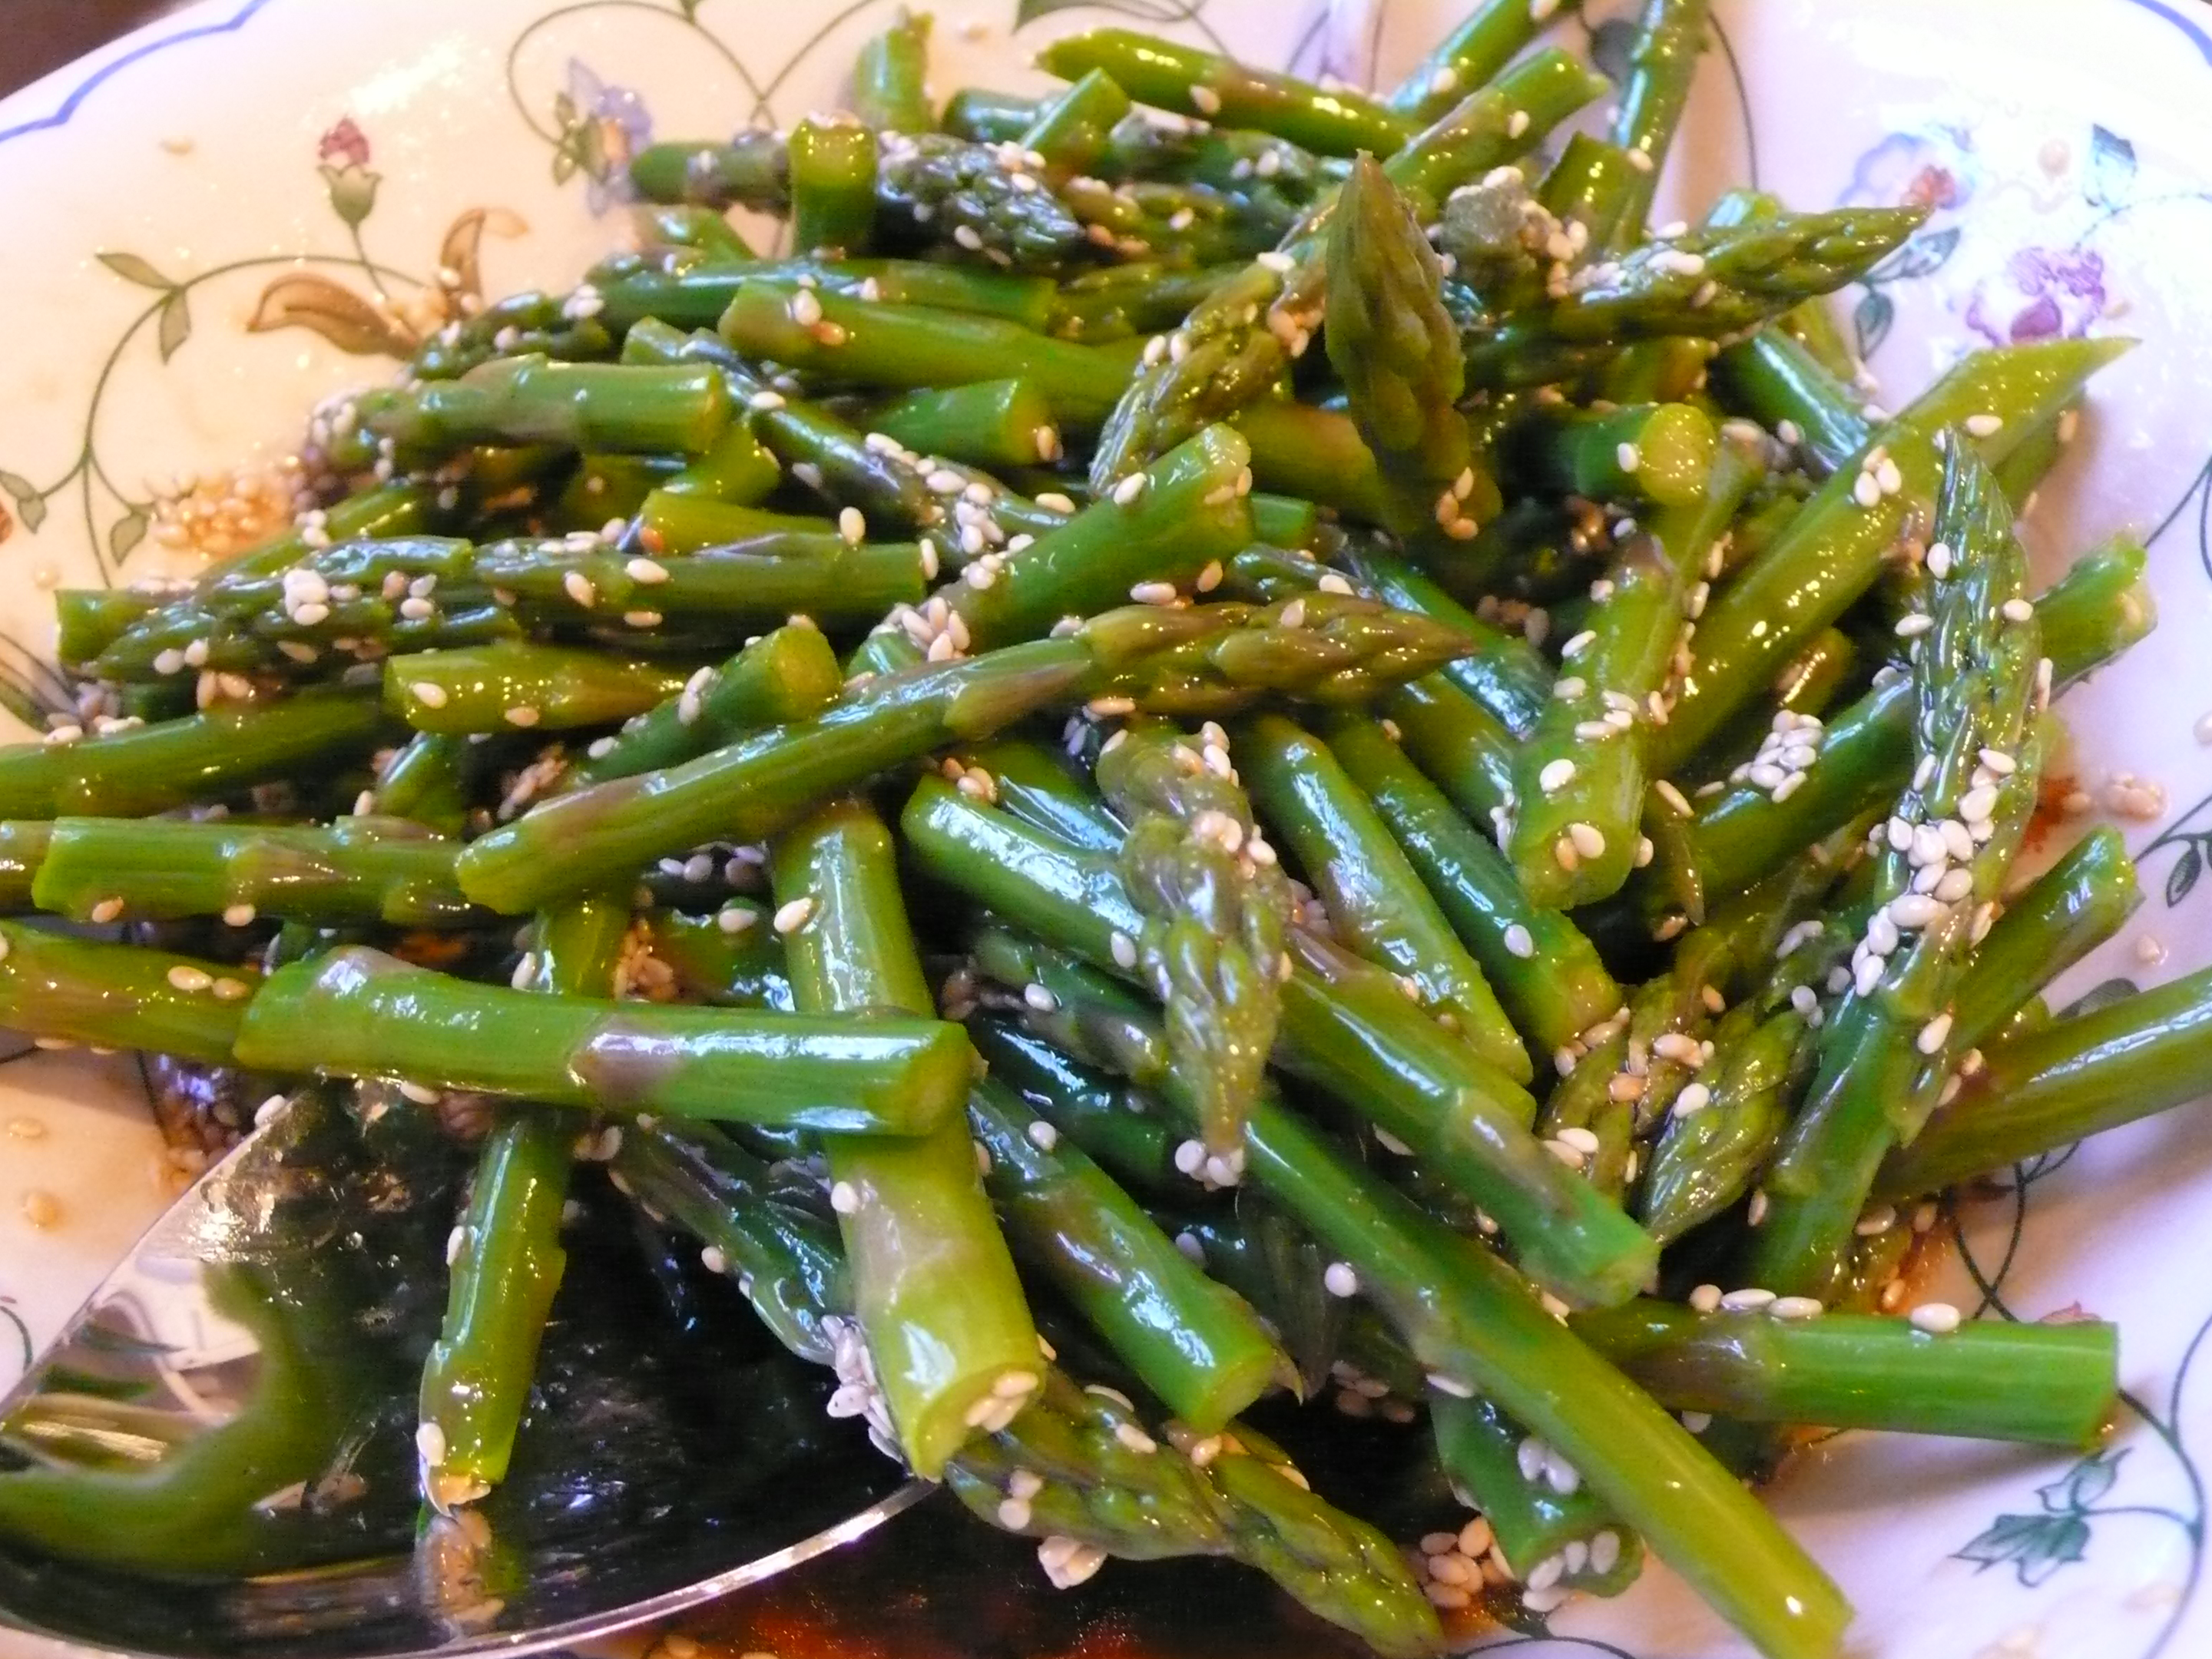 Cold Asparagus Salad with Sesame Seeds | Italicious